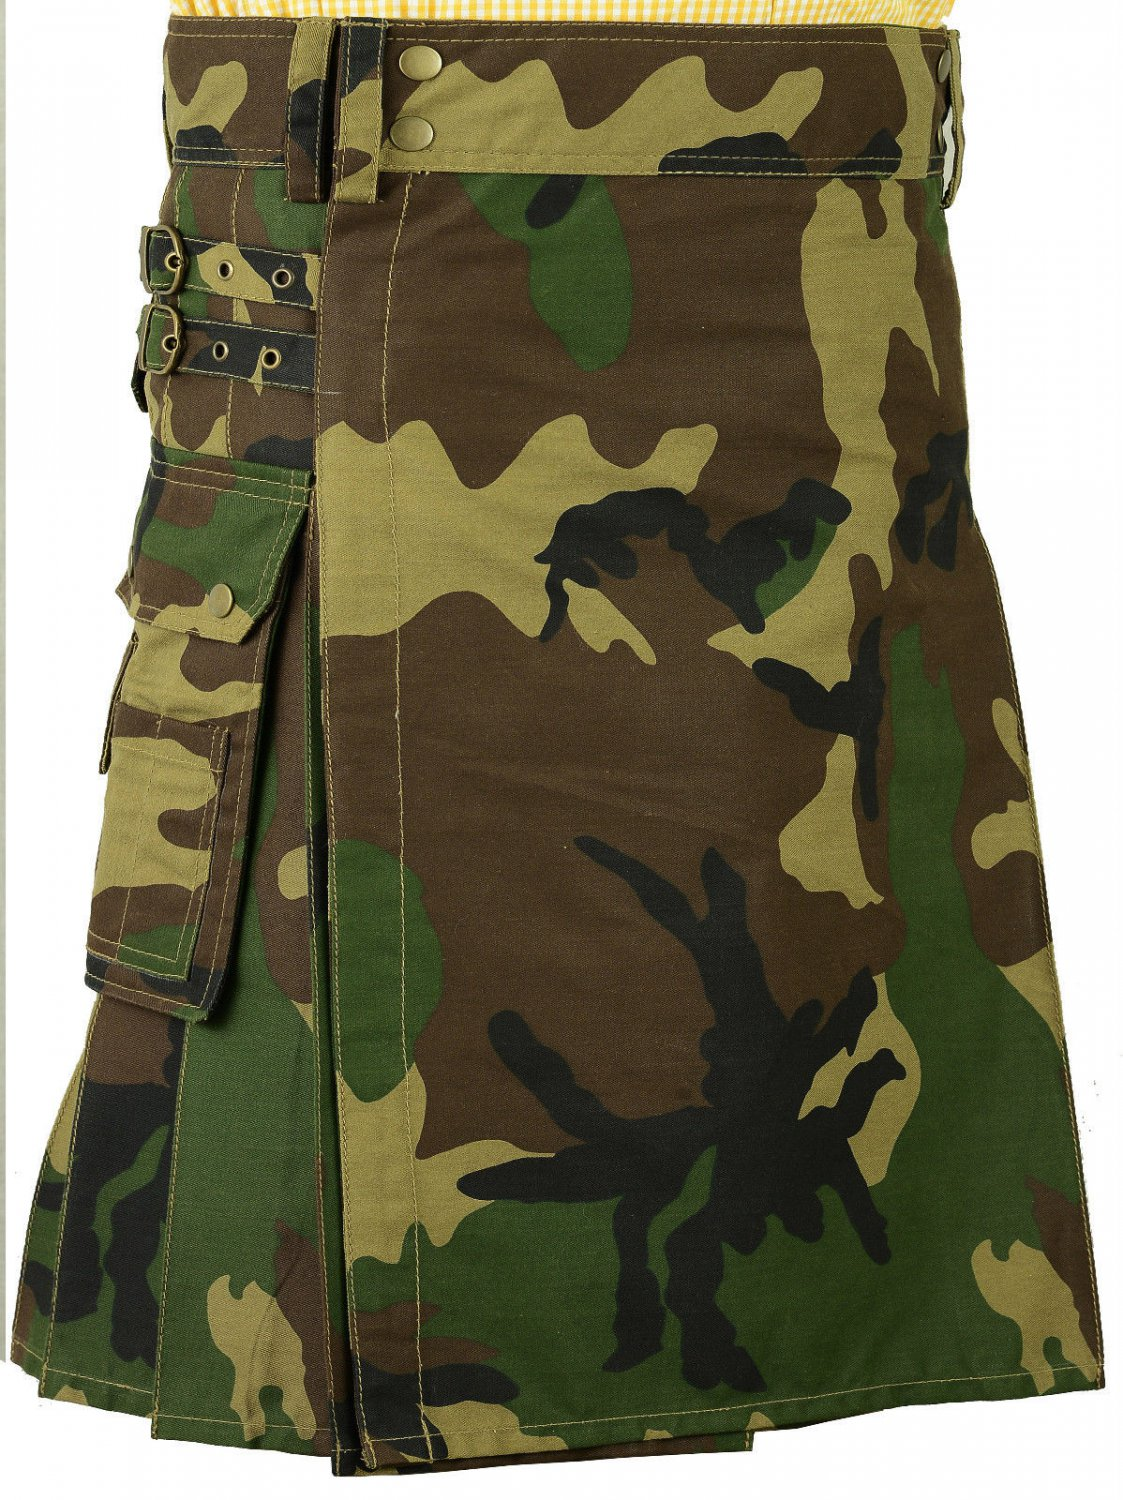 32 Waist Scottish Army Camo Kilt Unisex Deluxe Utility Fashion Kilt  Outdoor Cotton Kilt